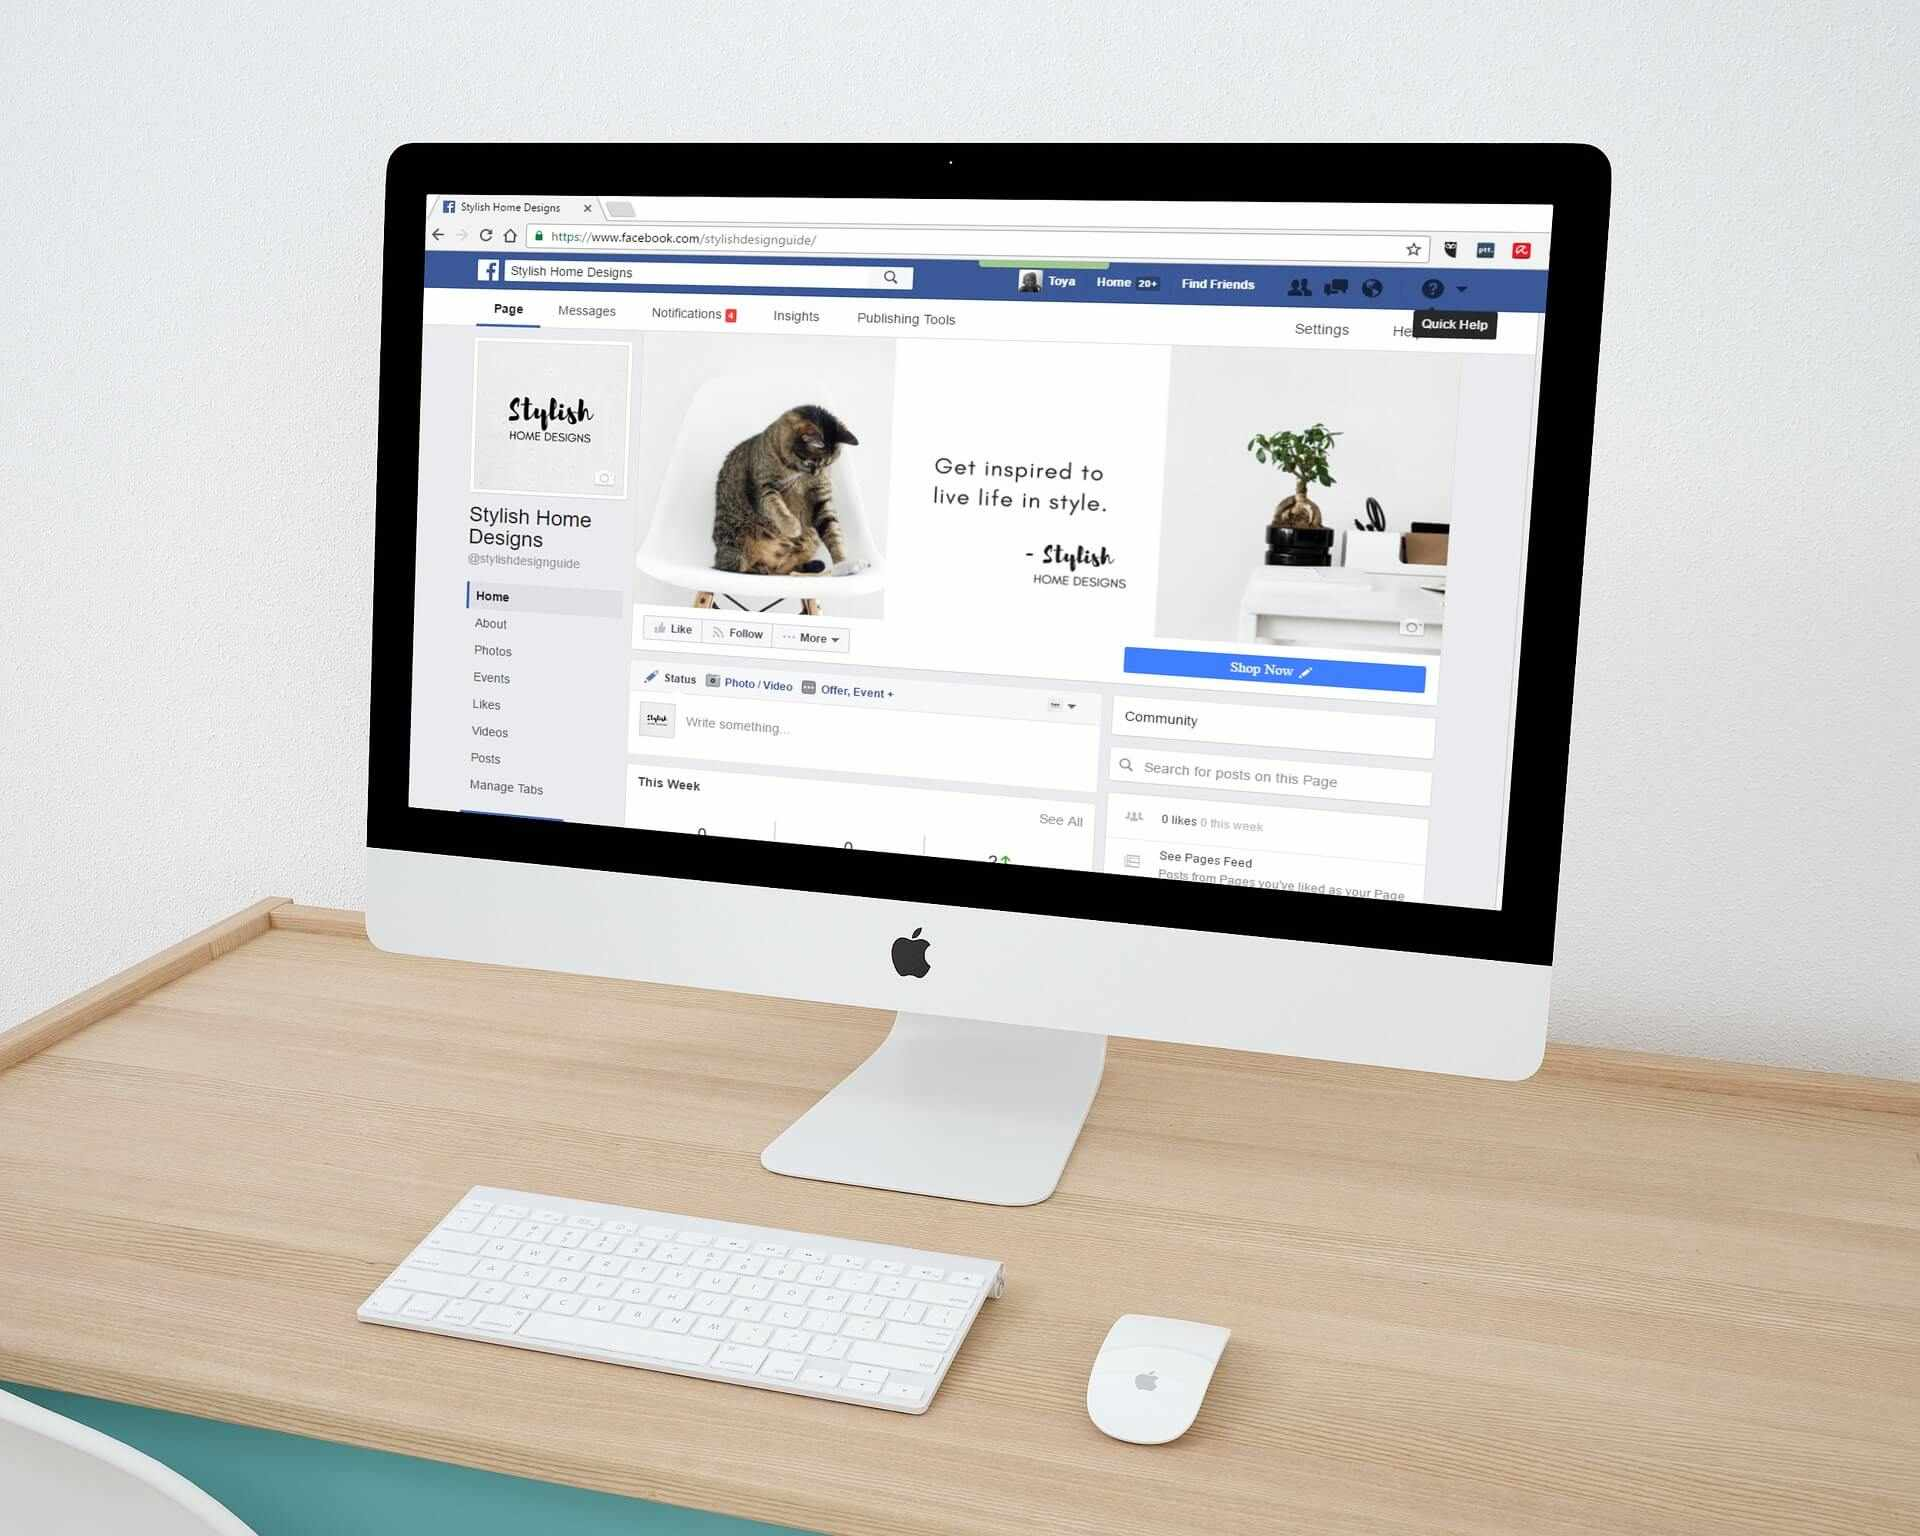 Facebook: ecco la prima campagna di Growth Marketing